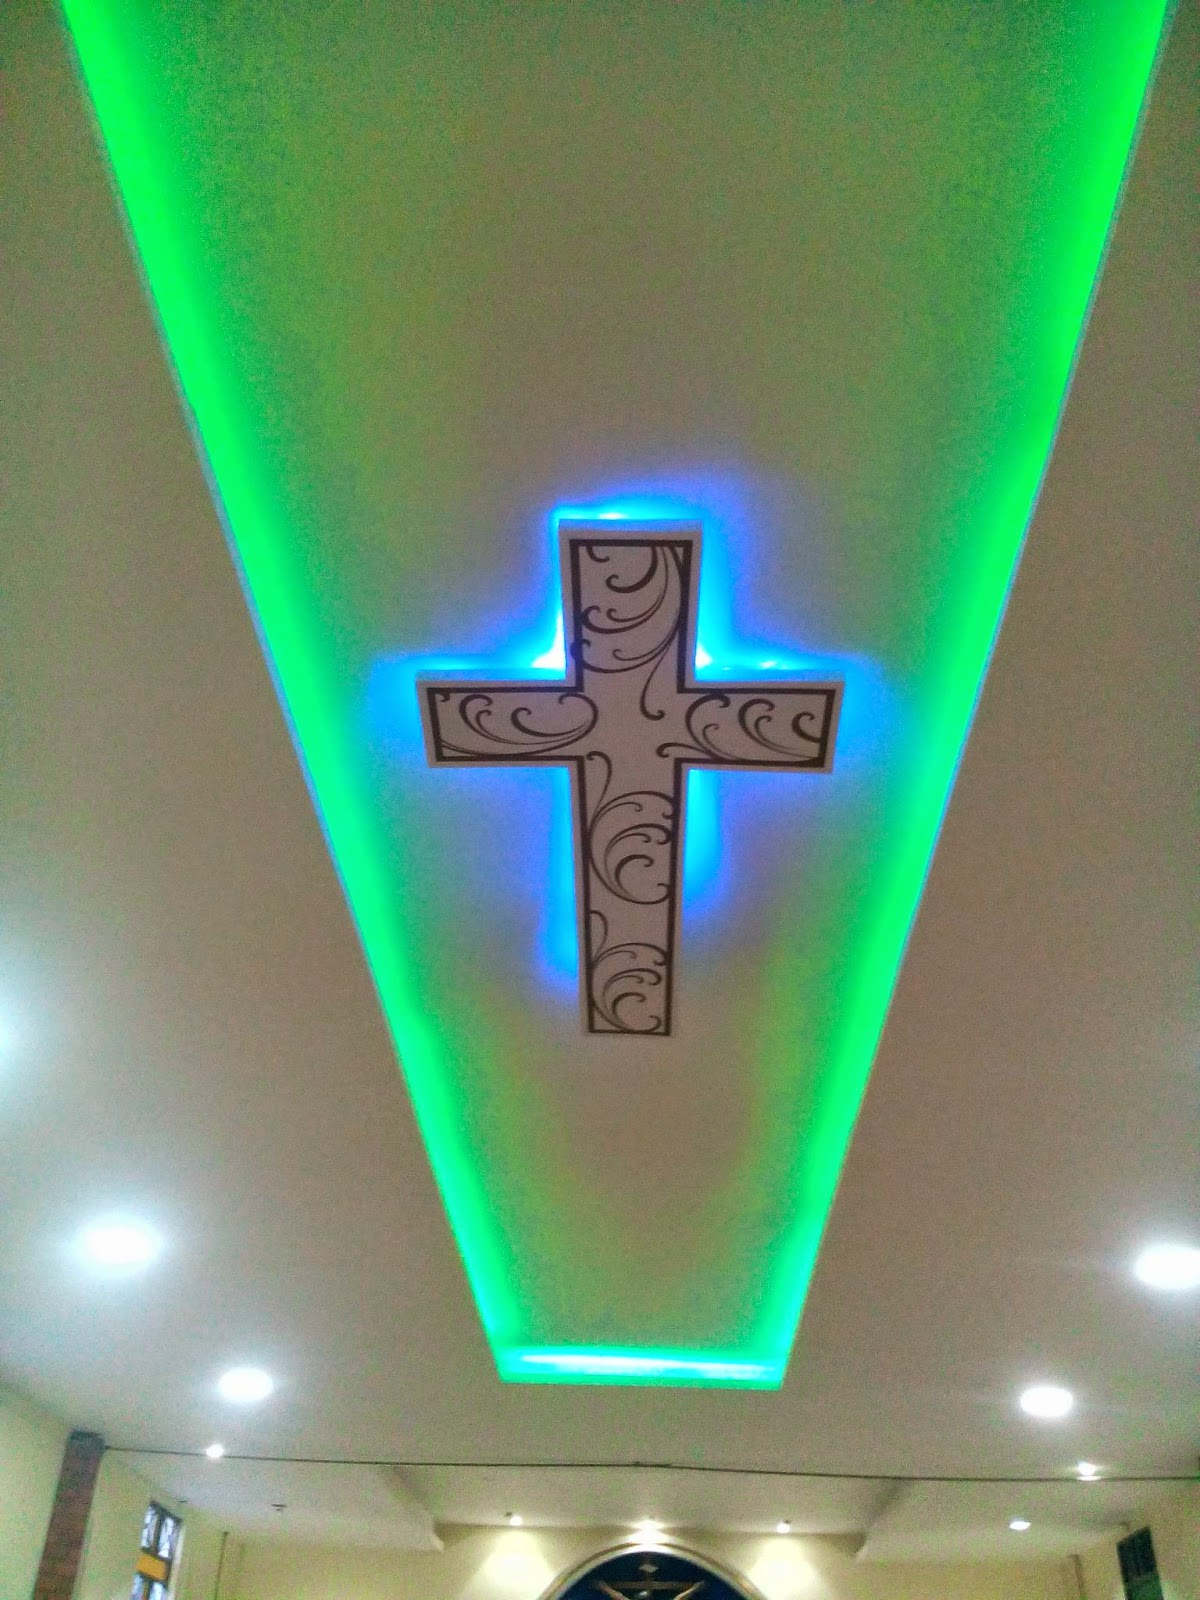 Decoraciones Y Drywall Cielo Falso En Superboar Con Luces - Luces-indirectas